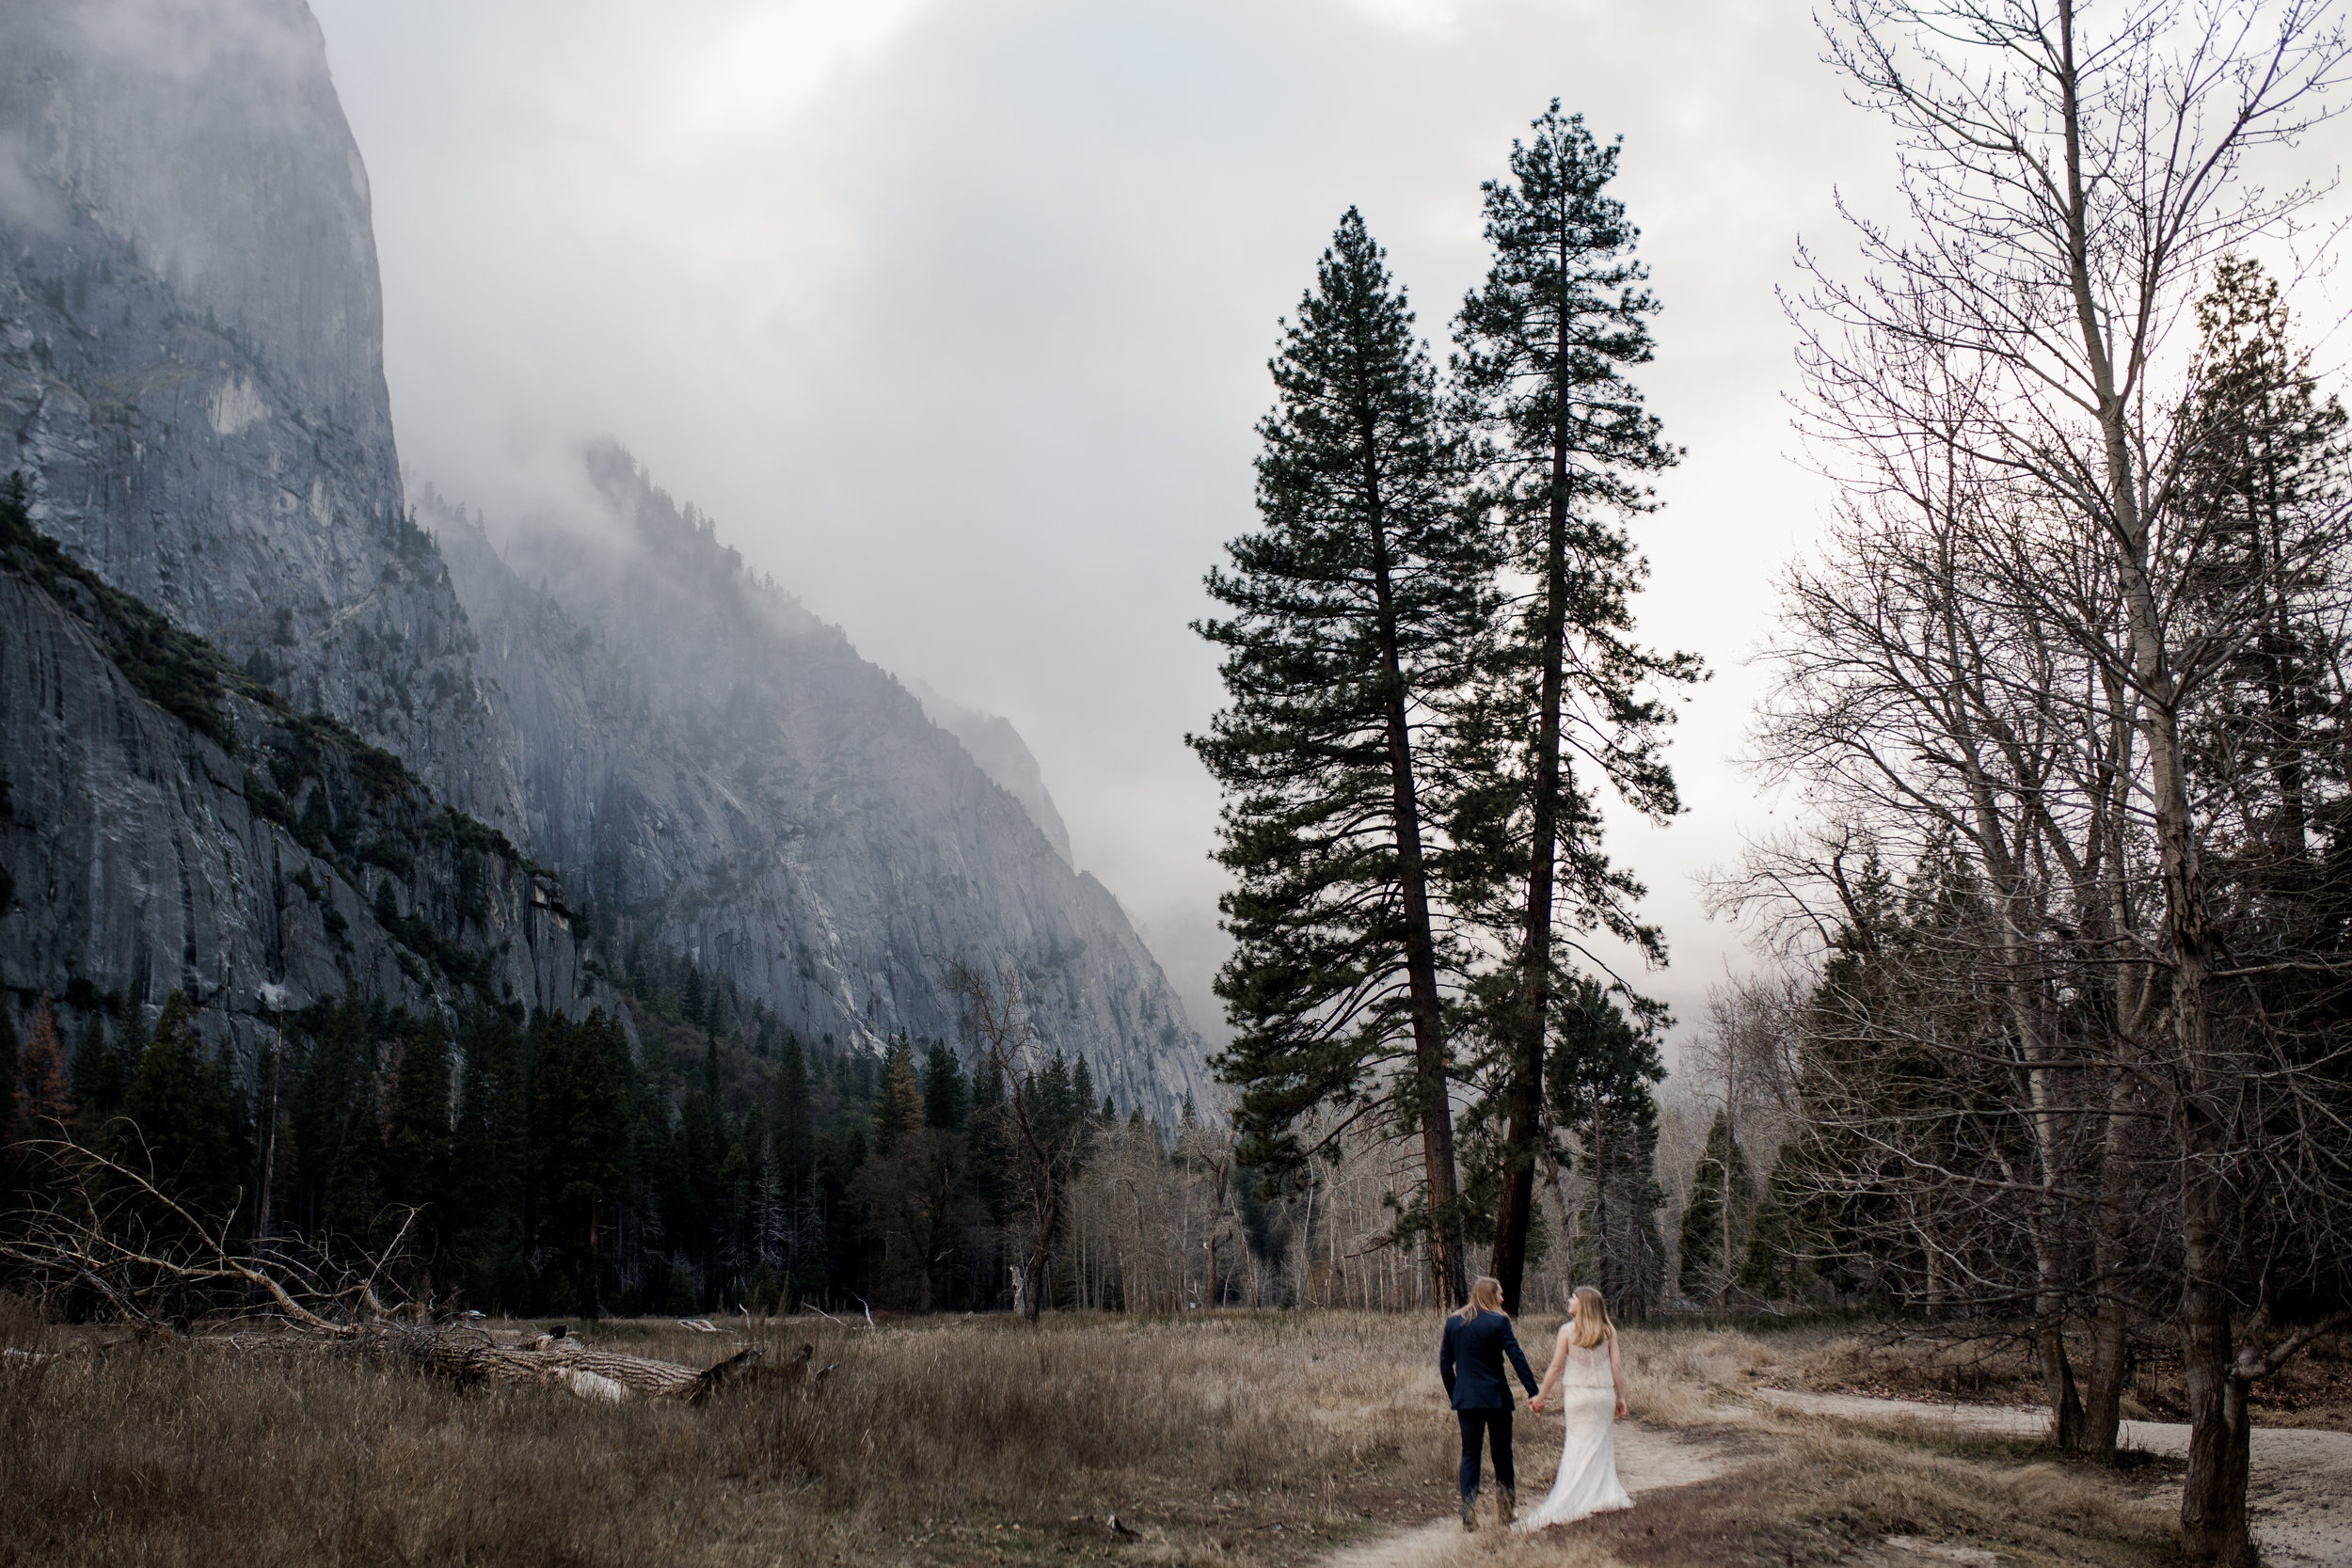 nicole-daacke-photography-yousemite-national-park-elopement-photographer-winter-cloud-moody-elope-inspiration-yosemite-valley-tunnel-view-winter-cloud-fog-weather-wedding-photos-56.jpg